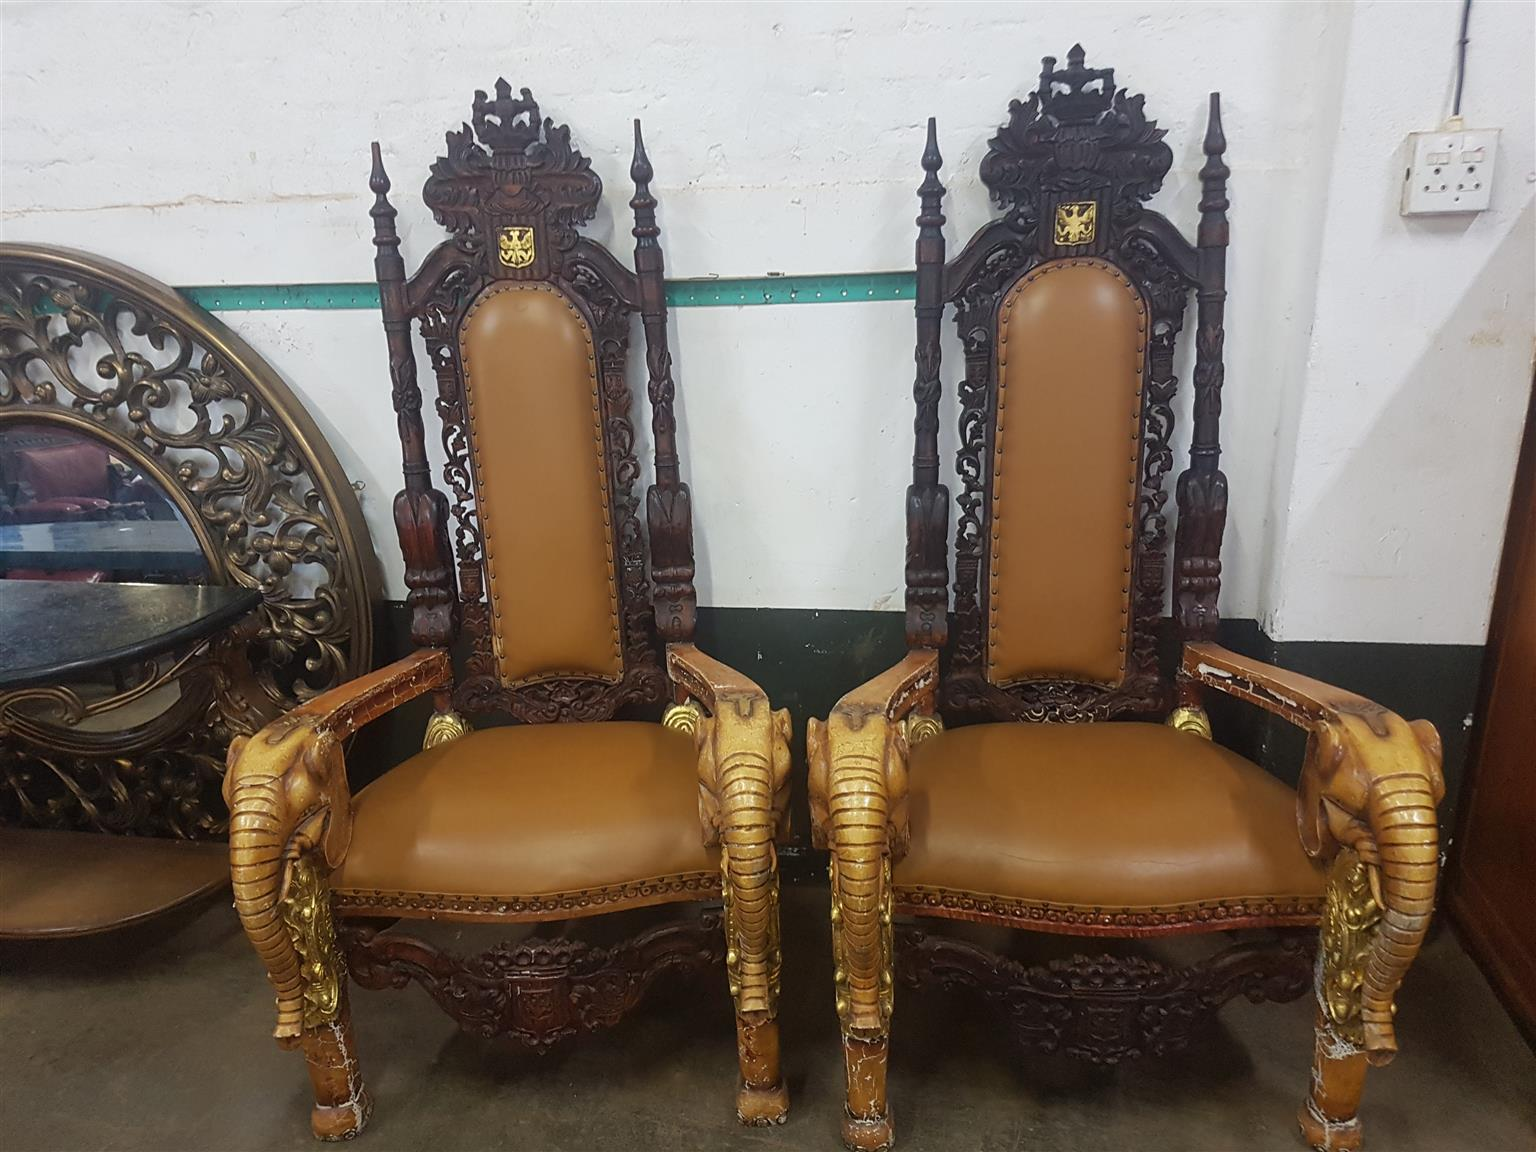 King & Queen Antique chairs - King & Queen Antique Chairs Junk Mail